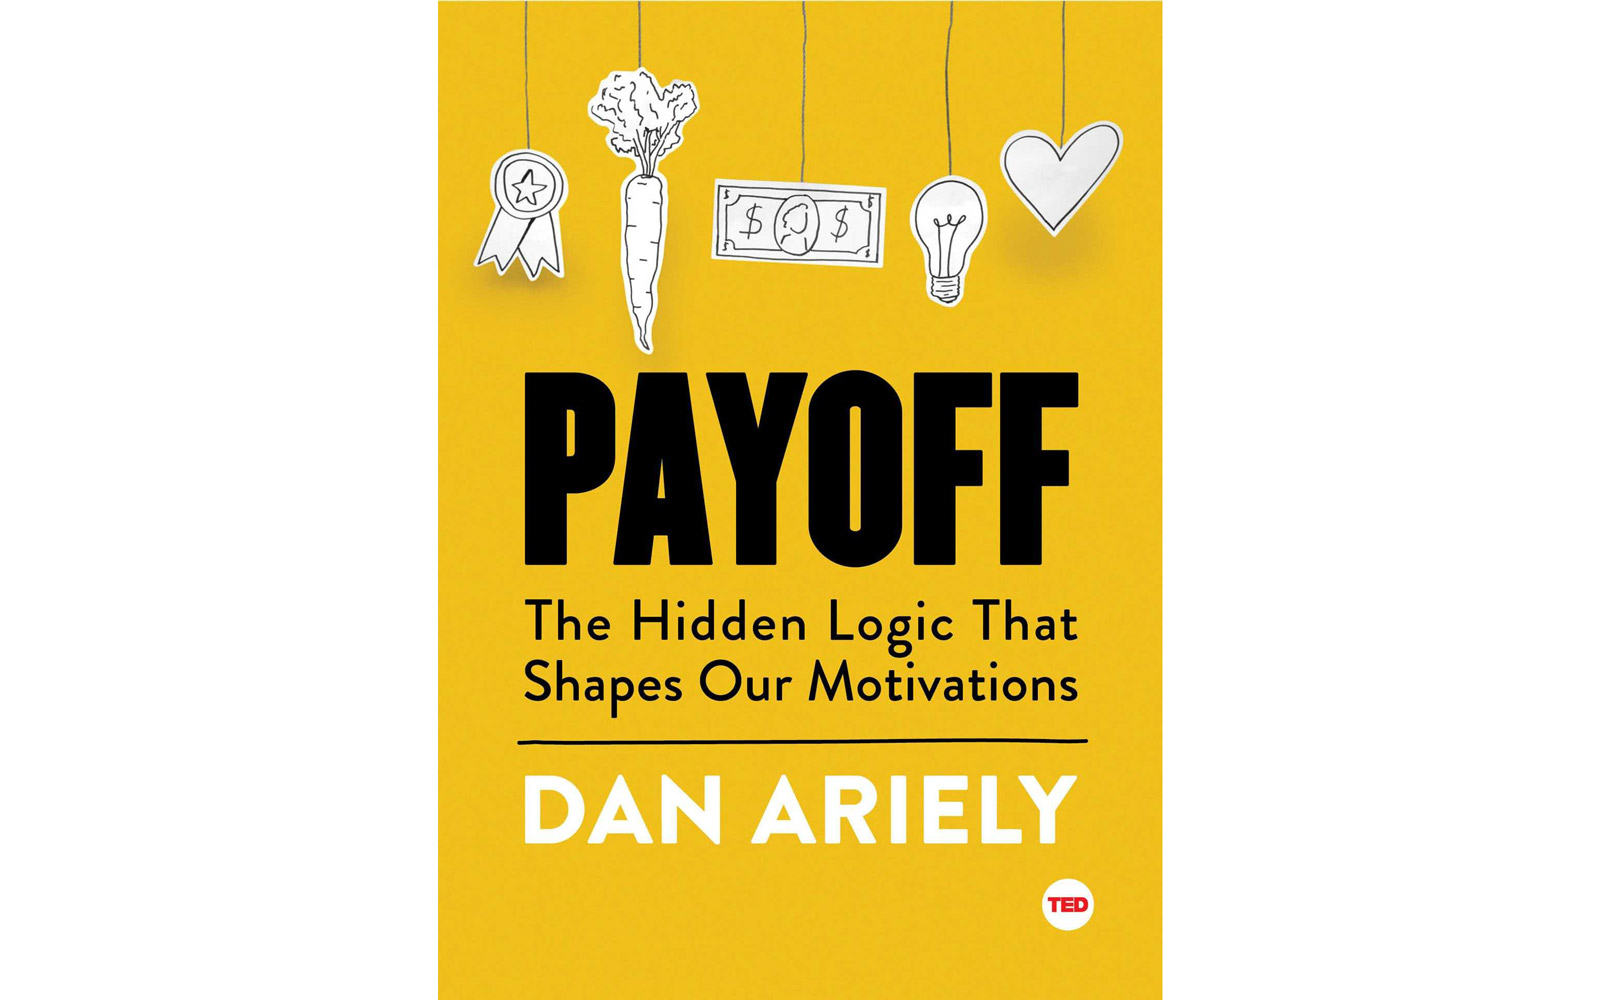 'Payoff: The Hidden Logic That Shapes Our Motivations' by Dan Ariely'